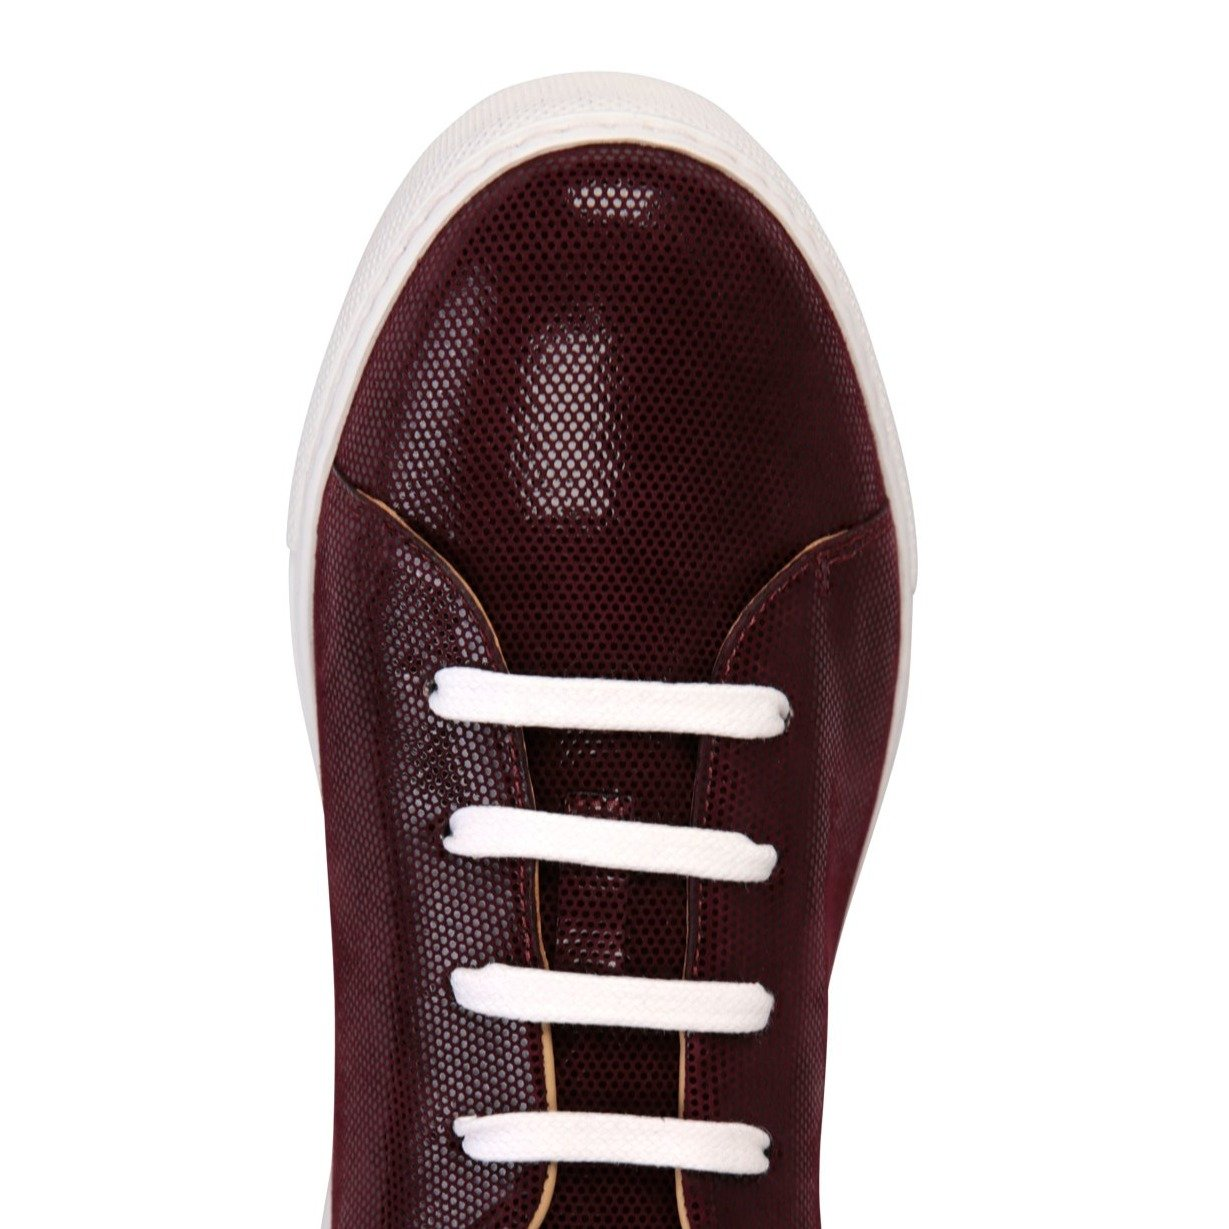 GROSSETO - Lady Garnet, VIAJIYU - Women's Hand Made Sustainable Luxury Shoes. Made in Italy. Made to Order.